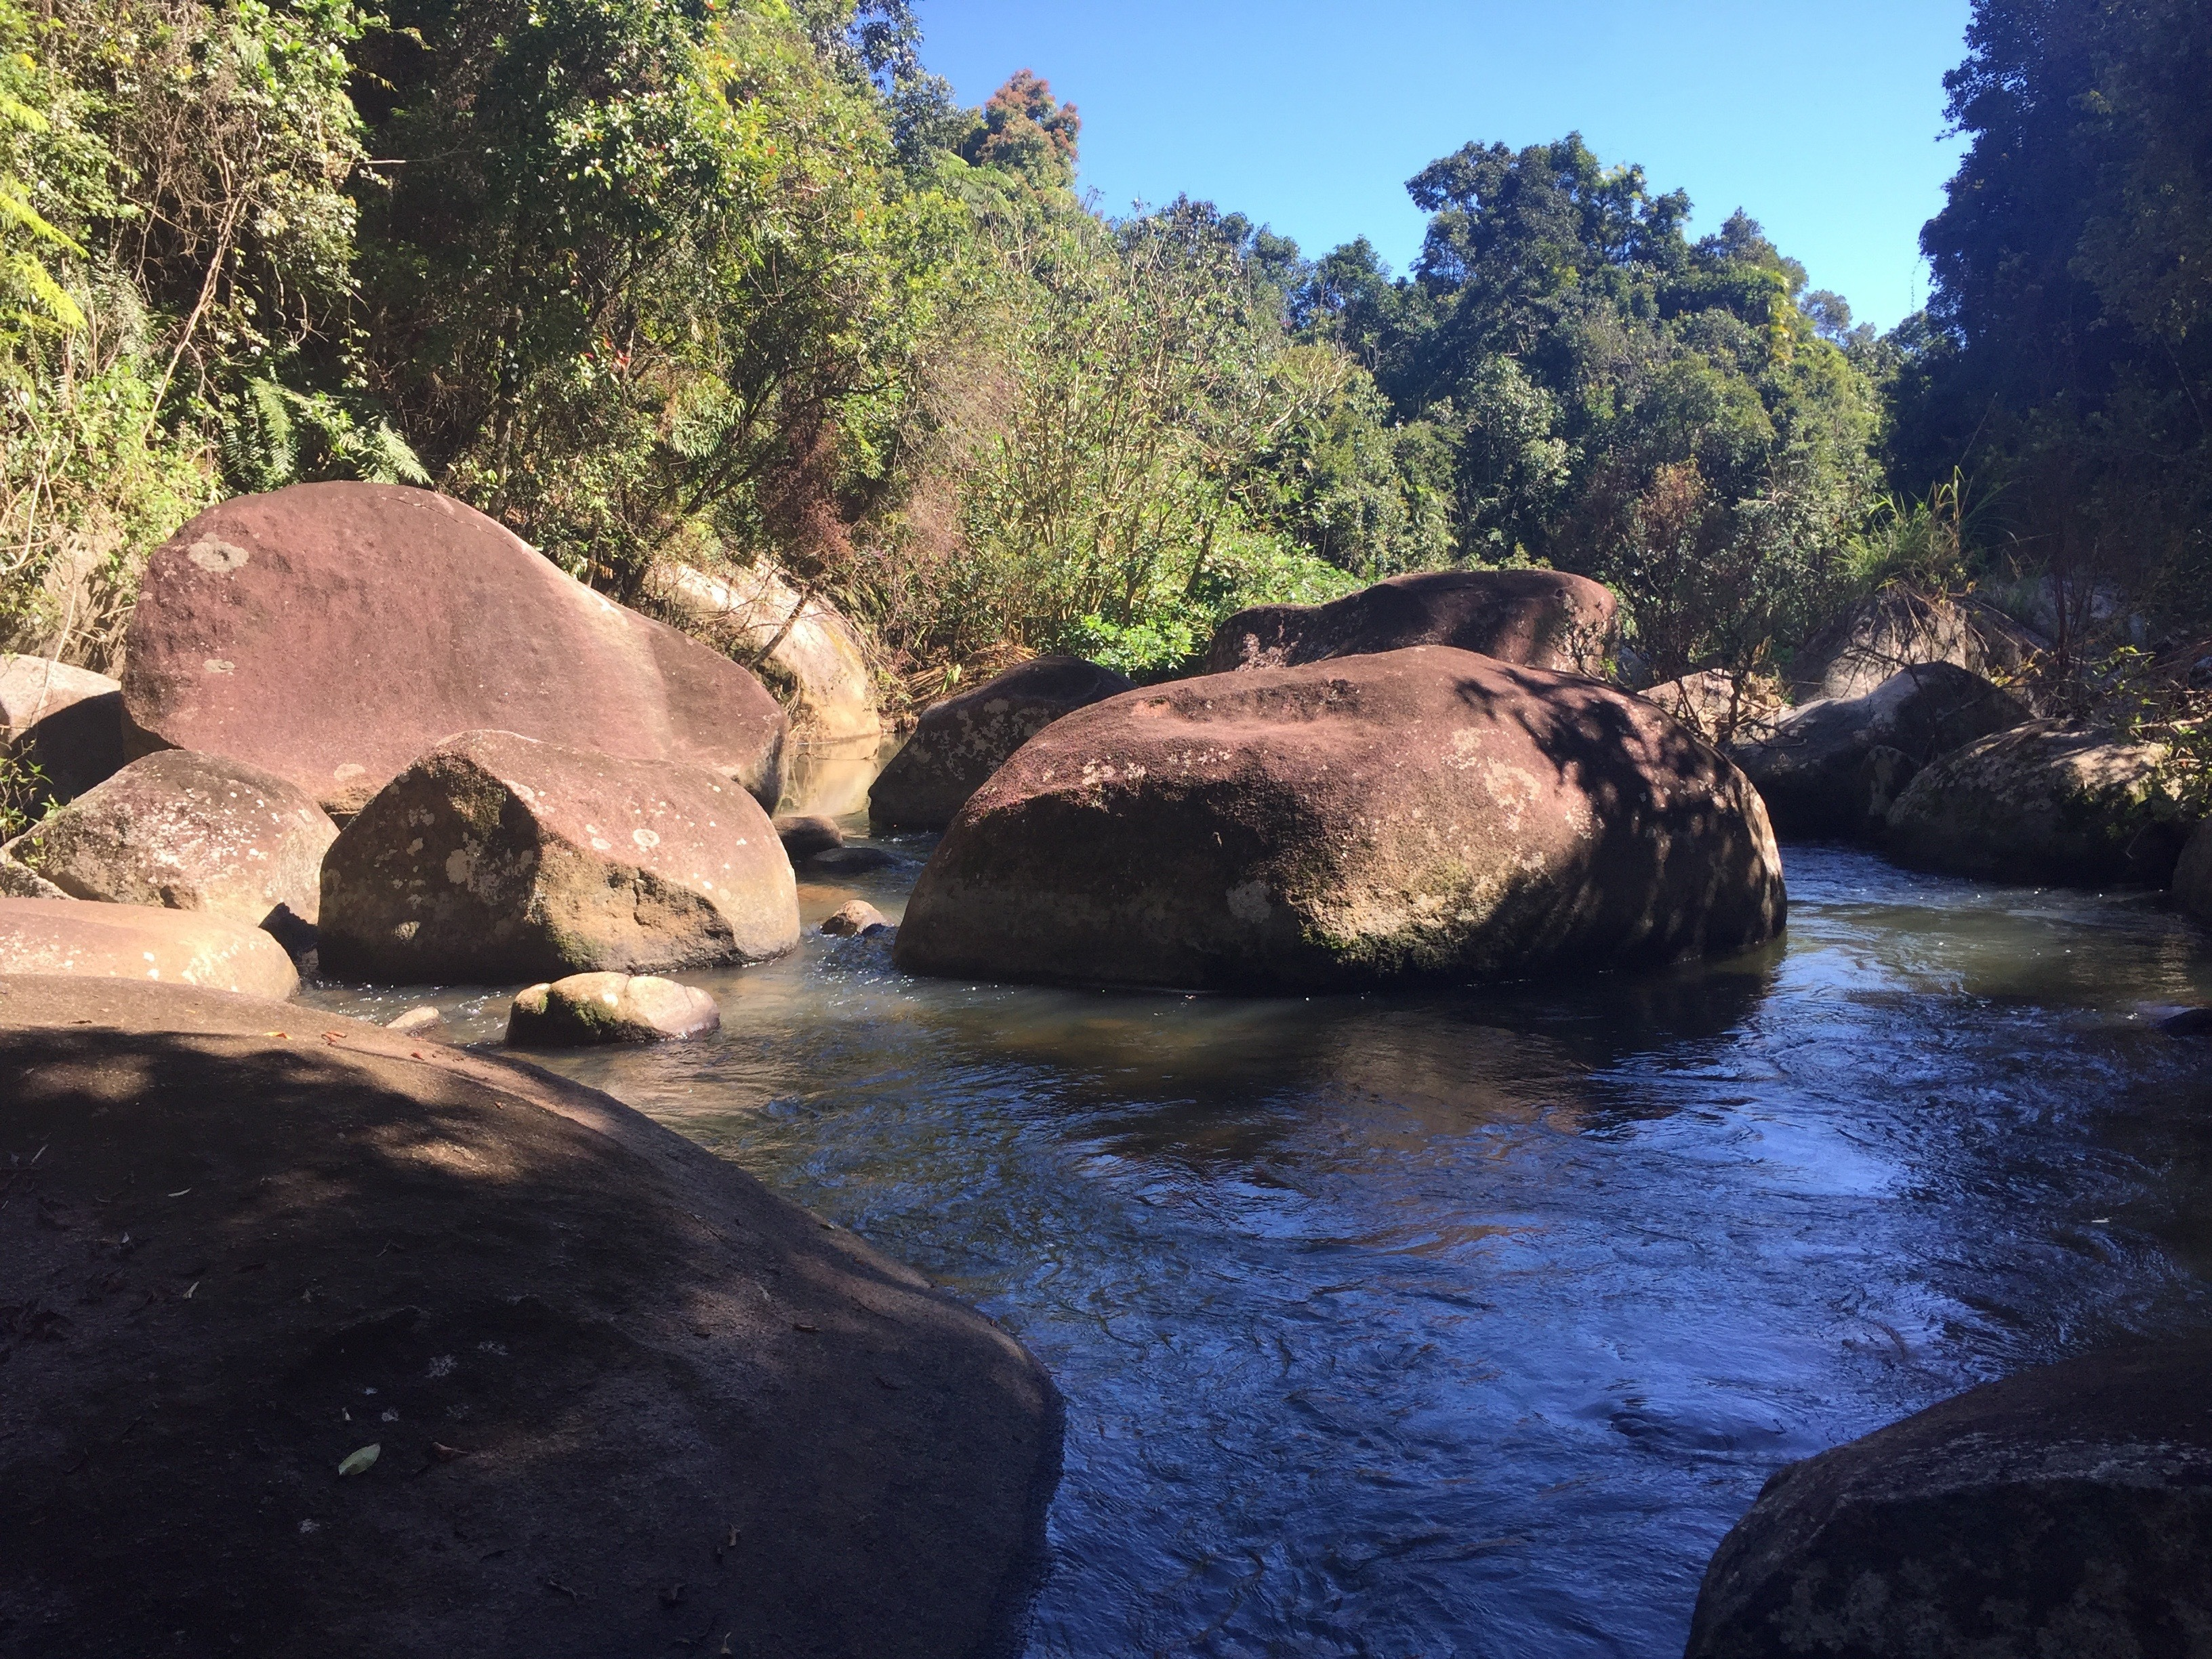 huge boulders in the river